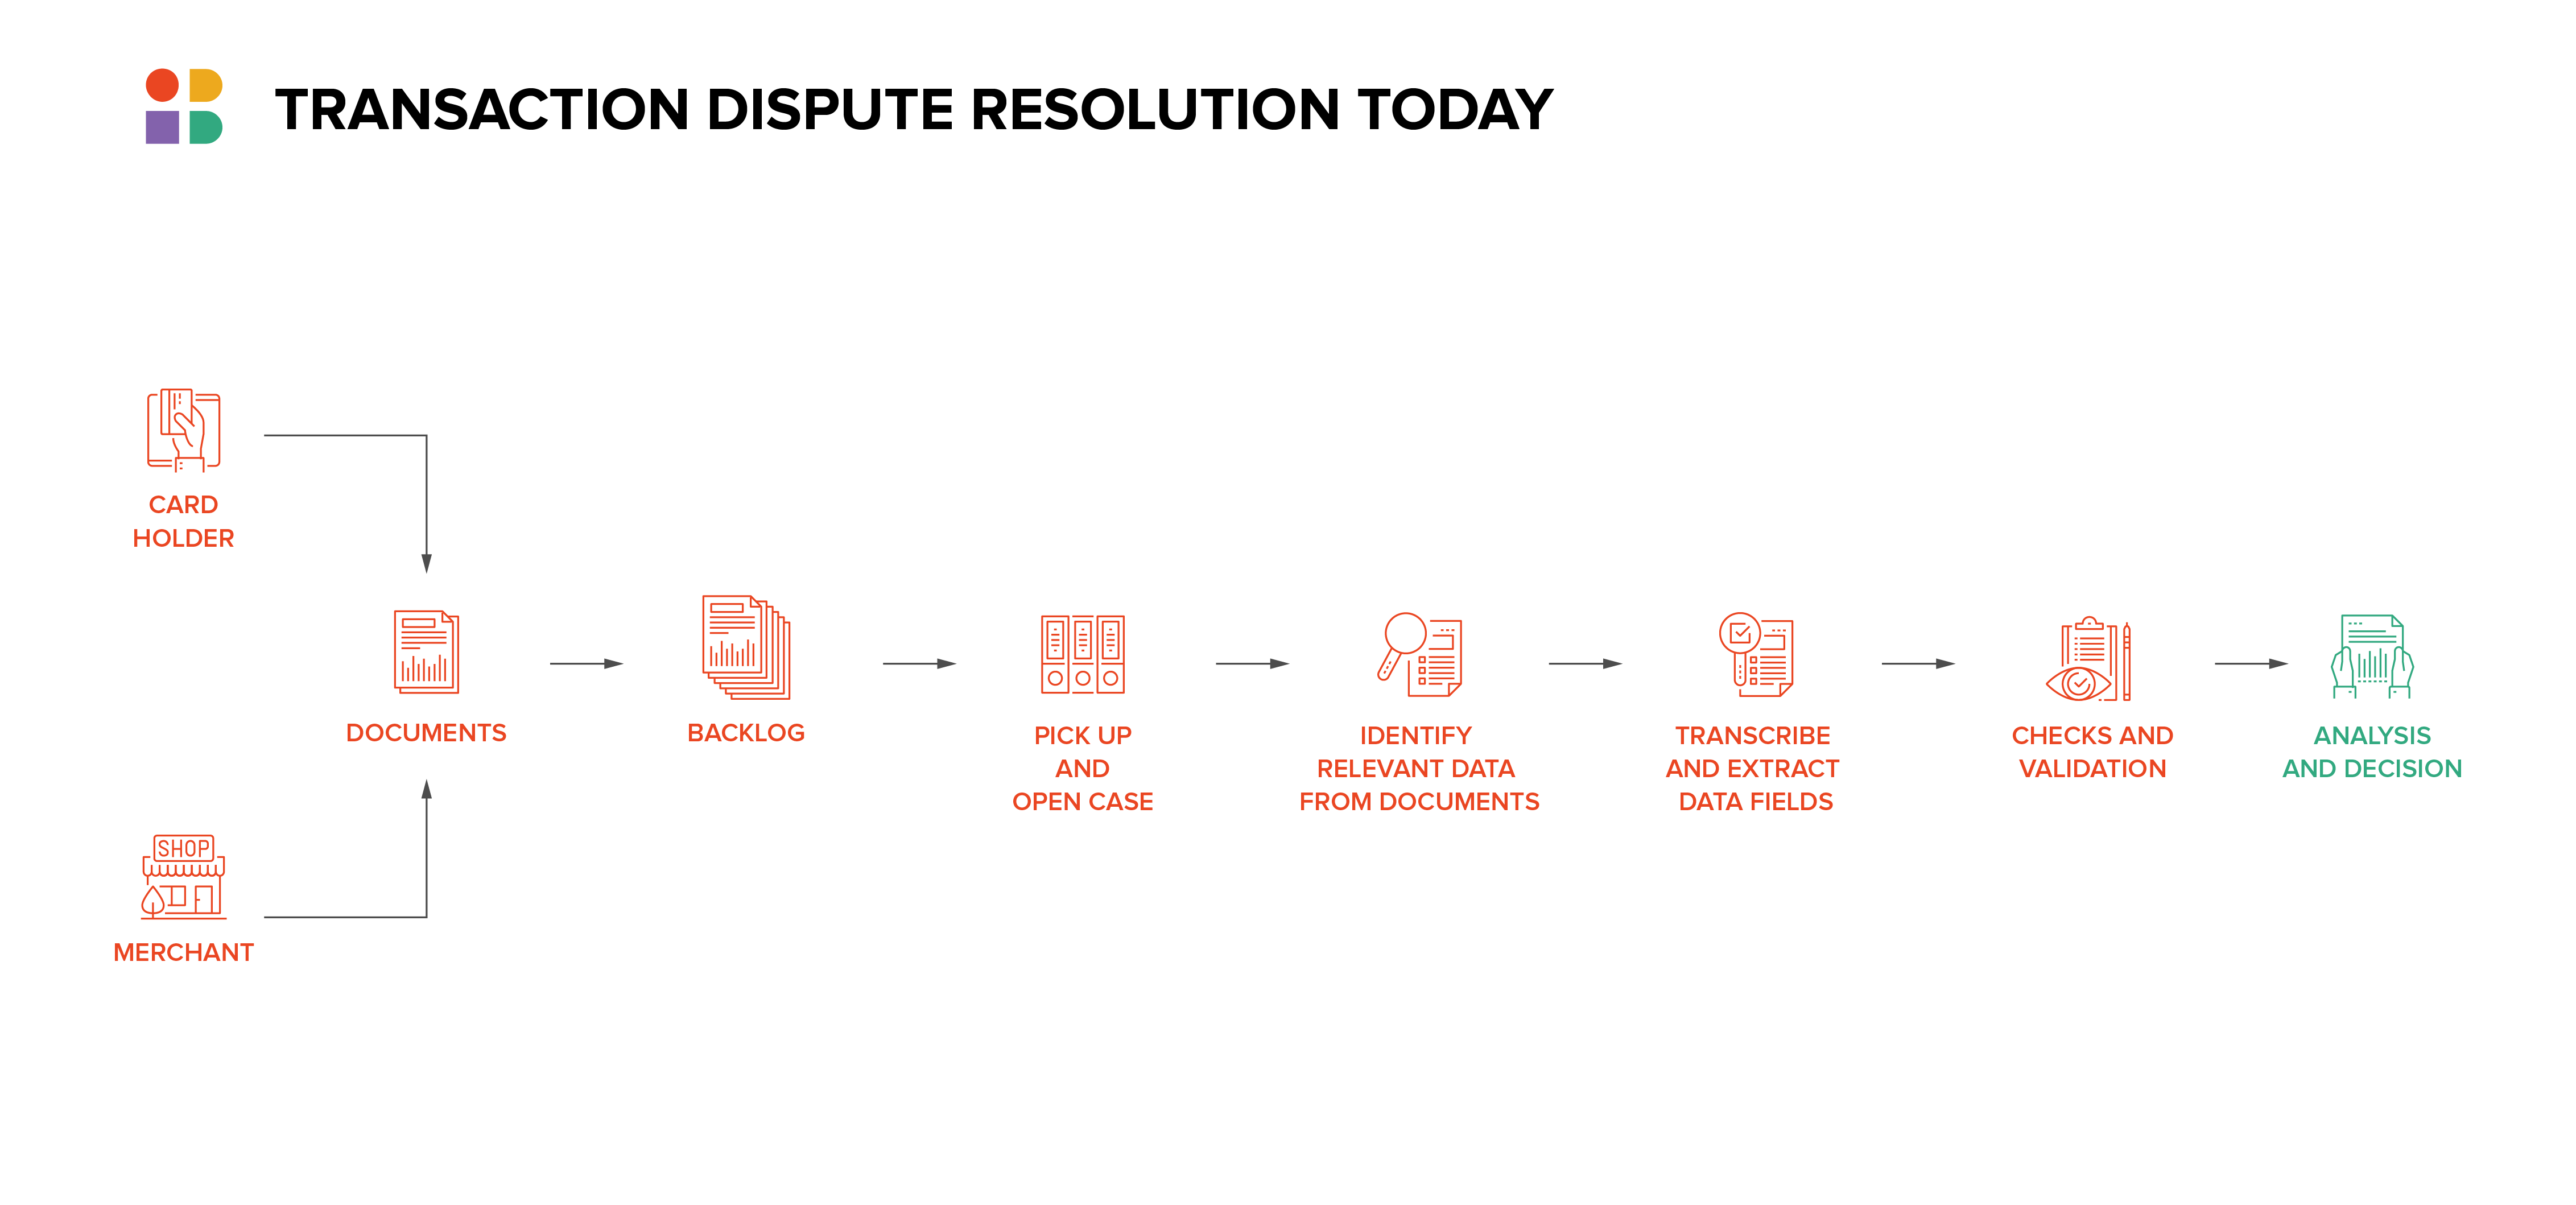 Transaction dispute resolution today